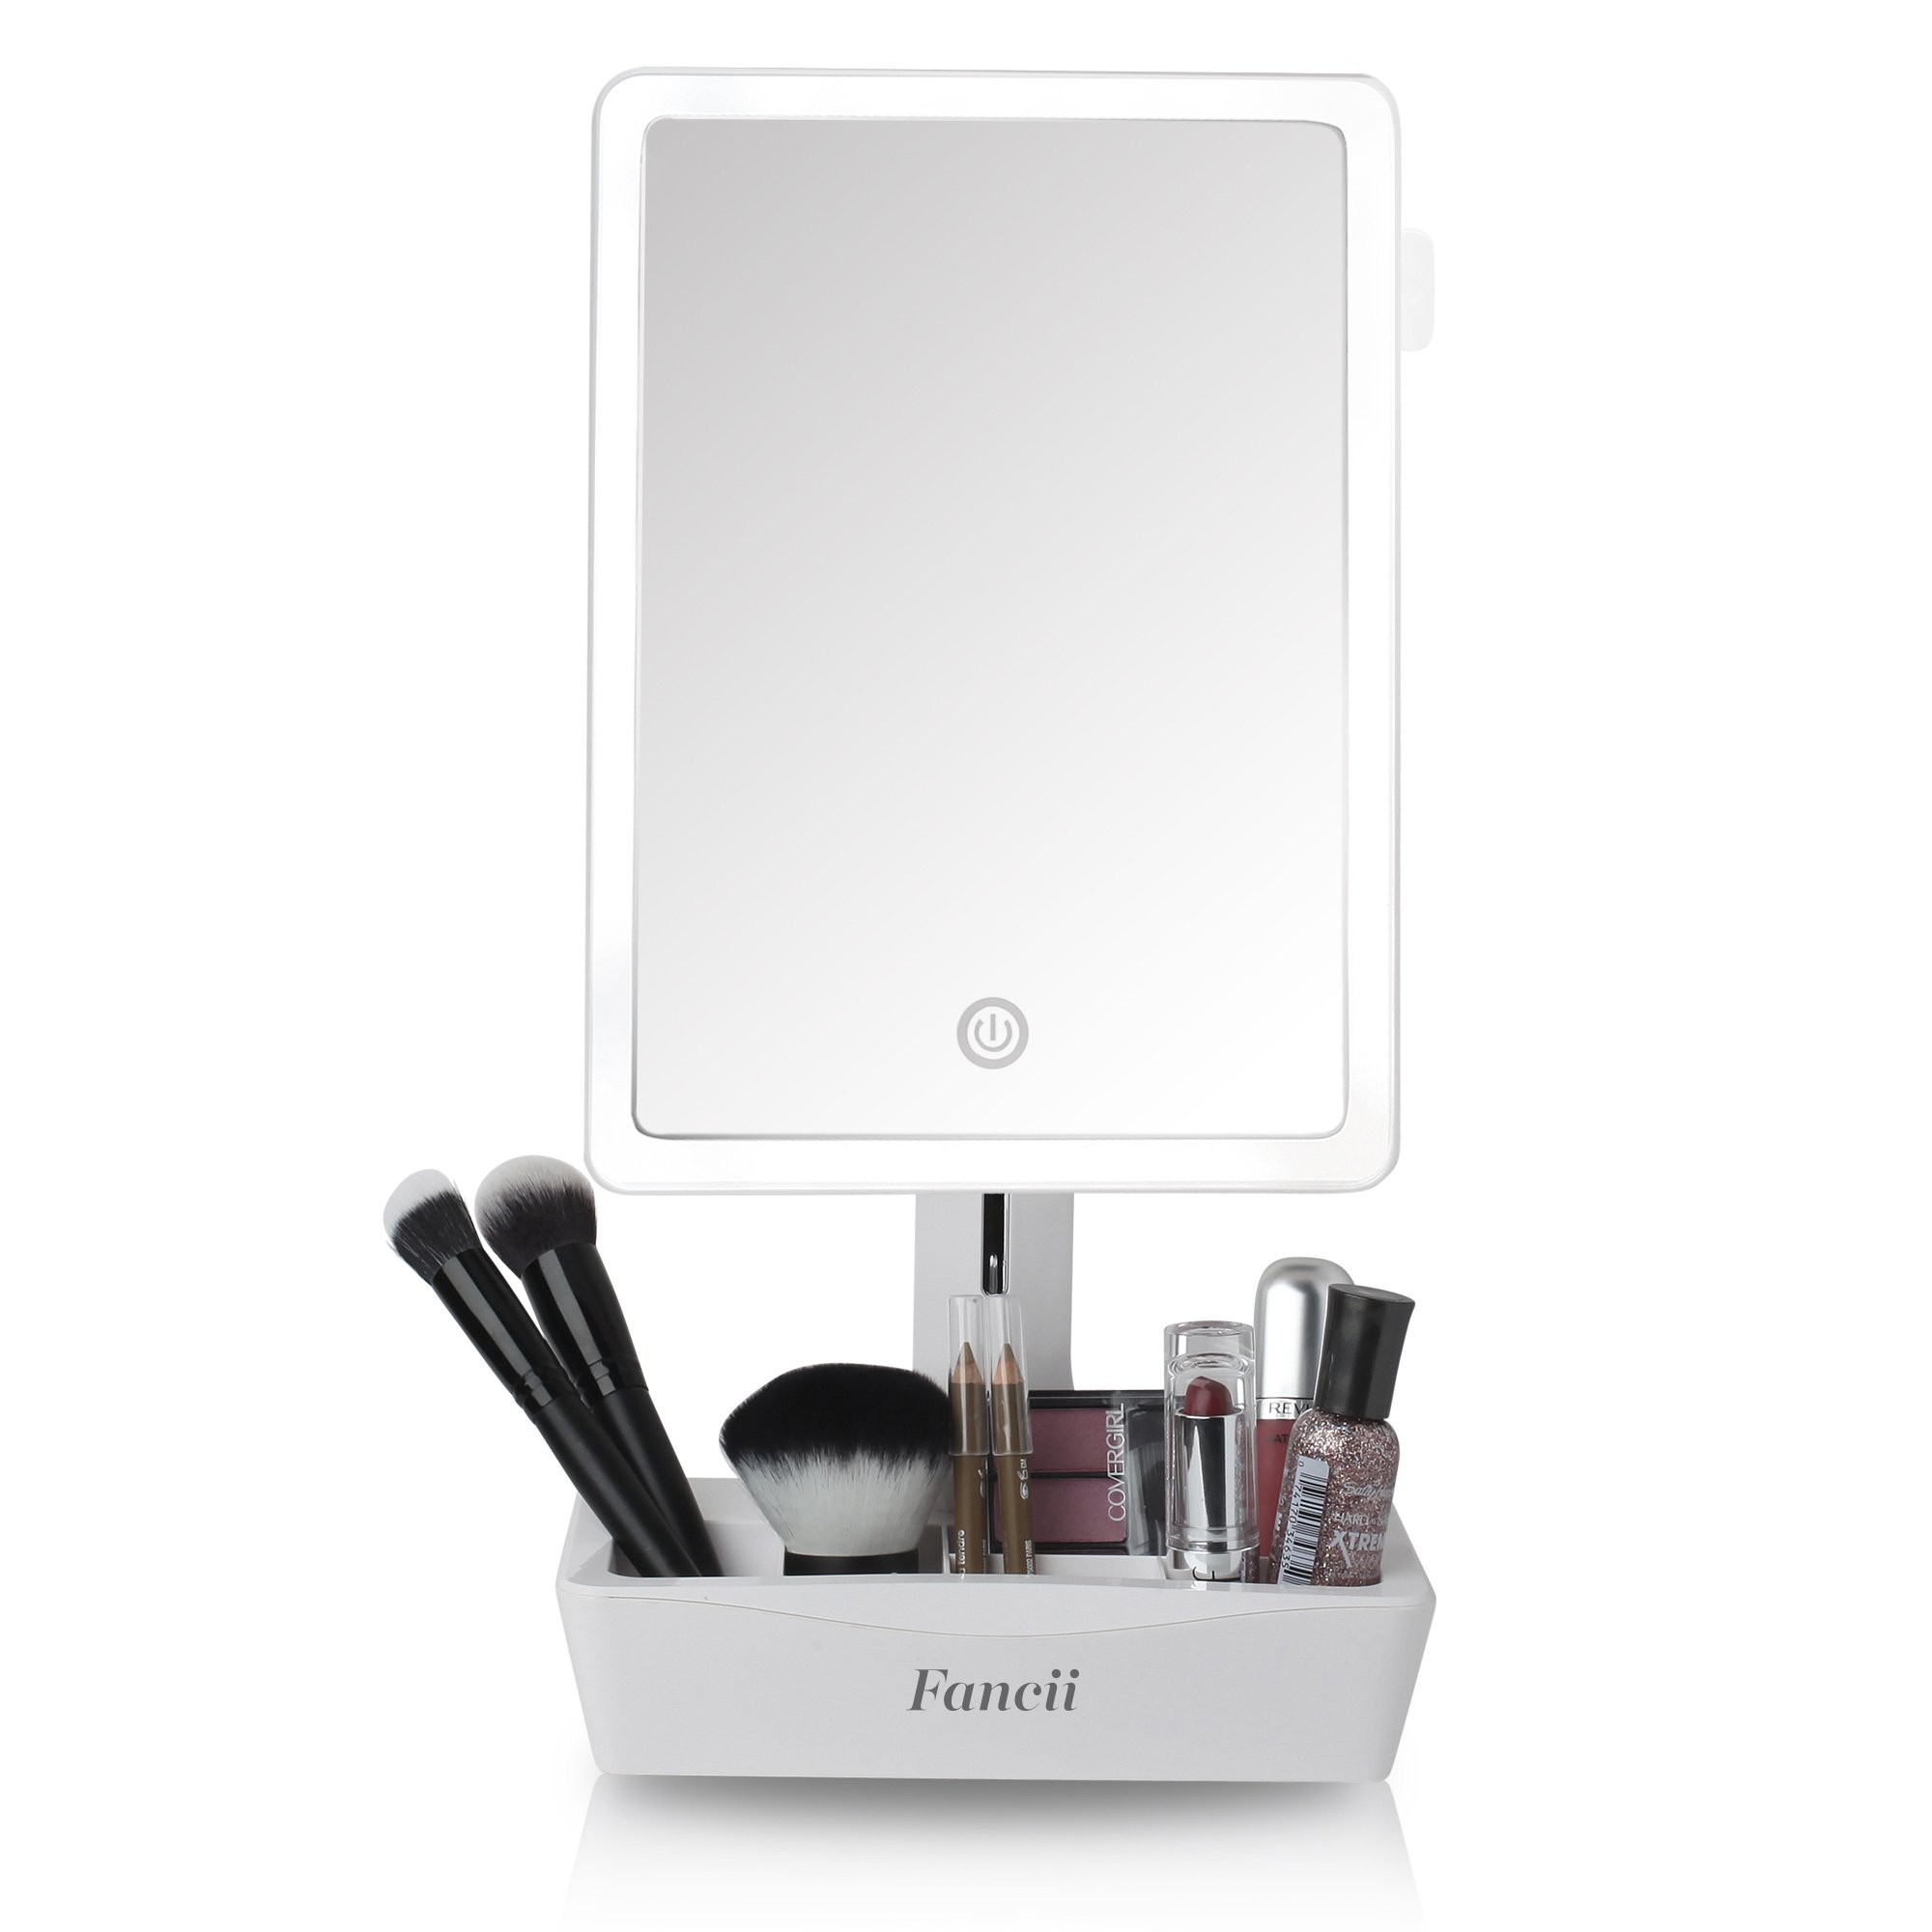 Fancii LED Lighted Large Vanity Makeup Mirror with 10X Magnifying Mirror - Dimmable Natural Light, Touch Screen, Dual Power, Adjustable Stand with Cosmetic Organizer - Gala by Fancii